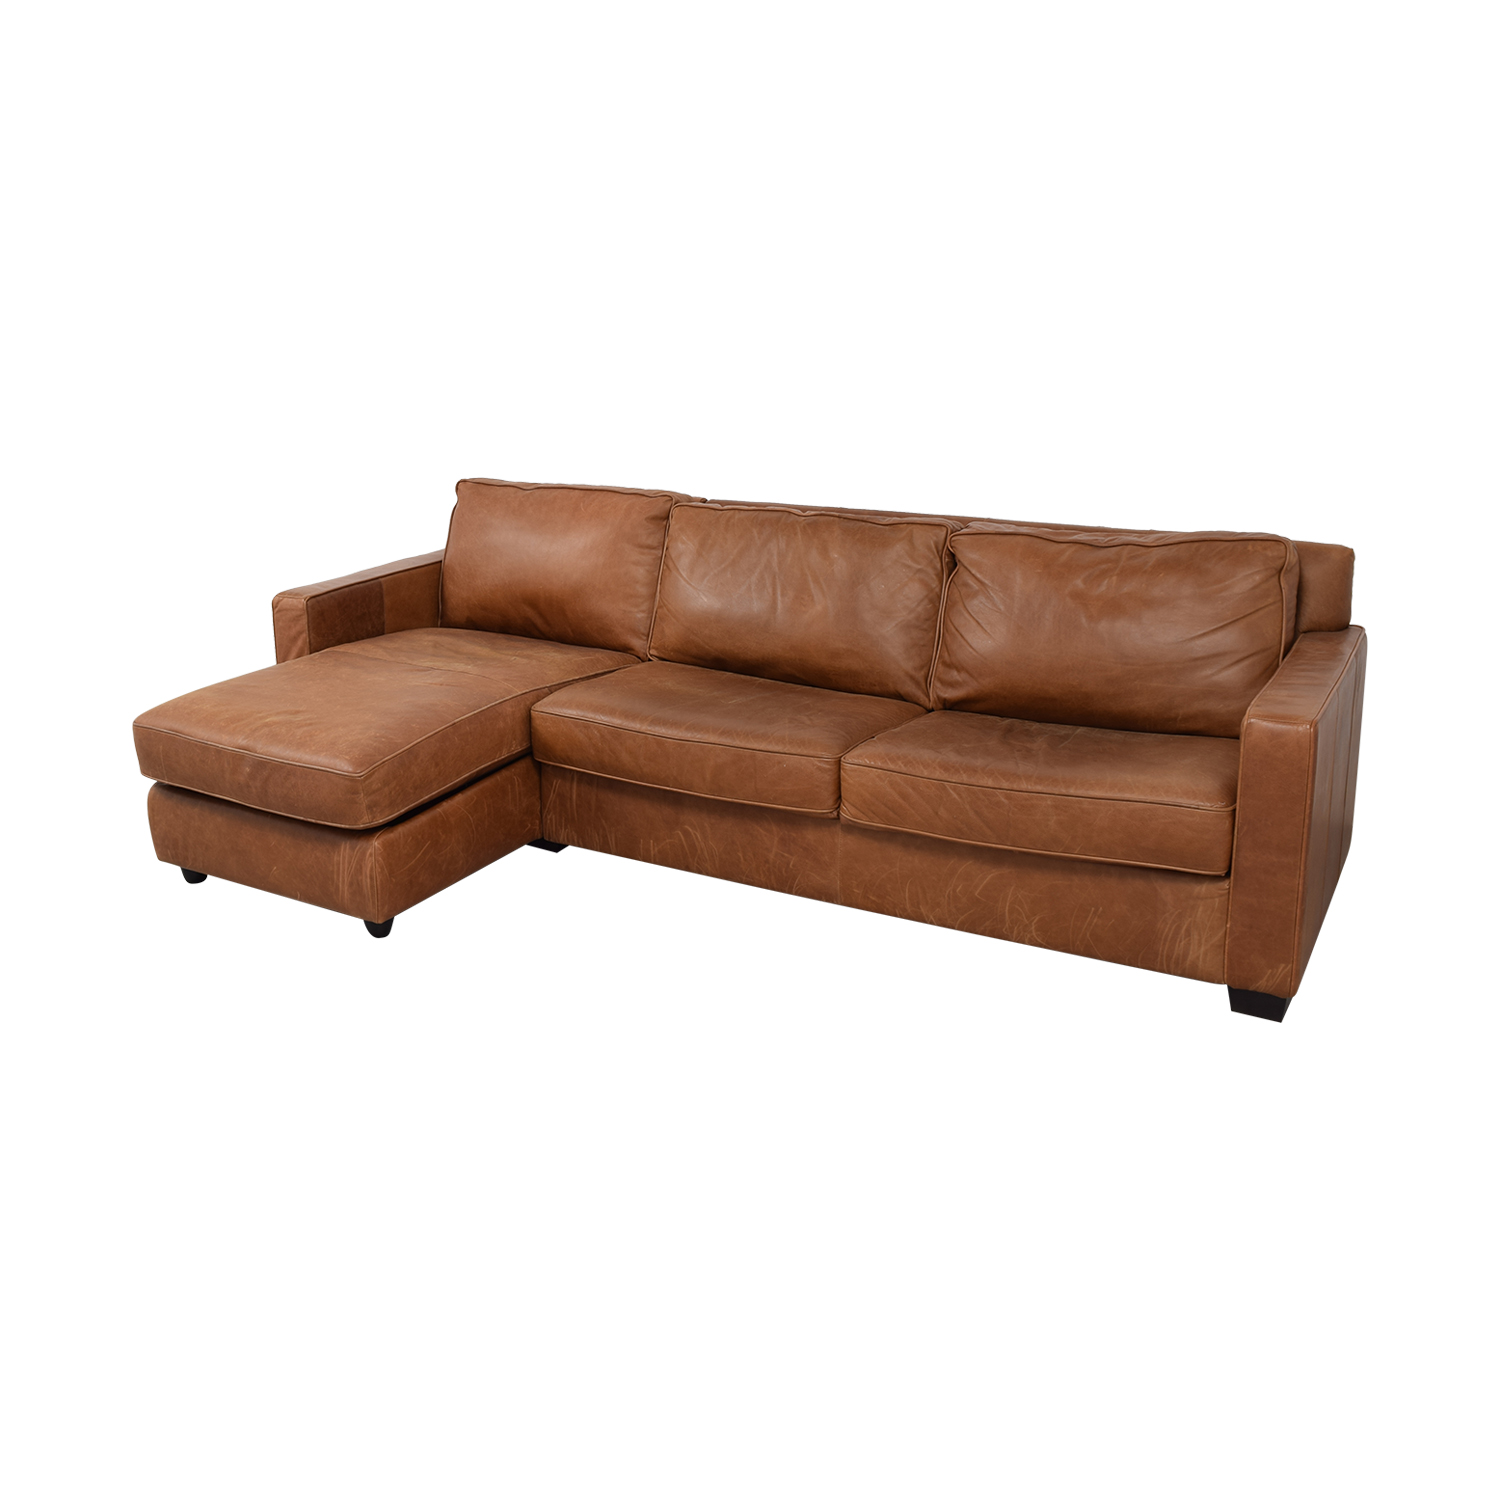 buy popular 432f6 d8dfd 56% OFF - West Elm West Elm Henry Leather Full Sleeper Sectional Storage /  Sofas